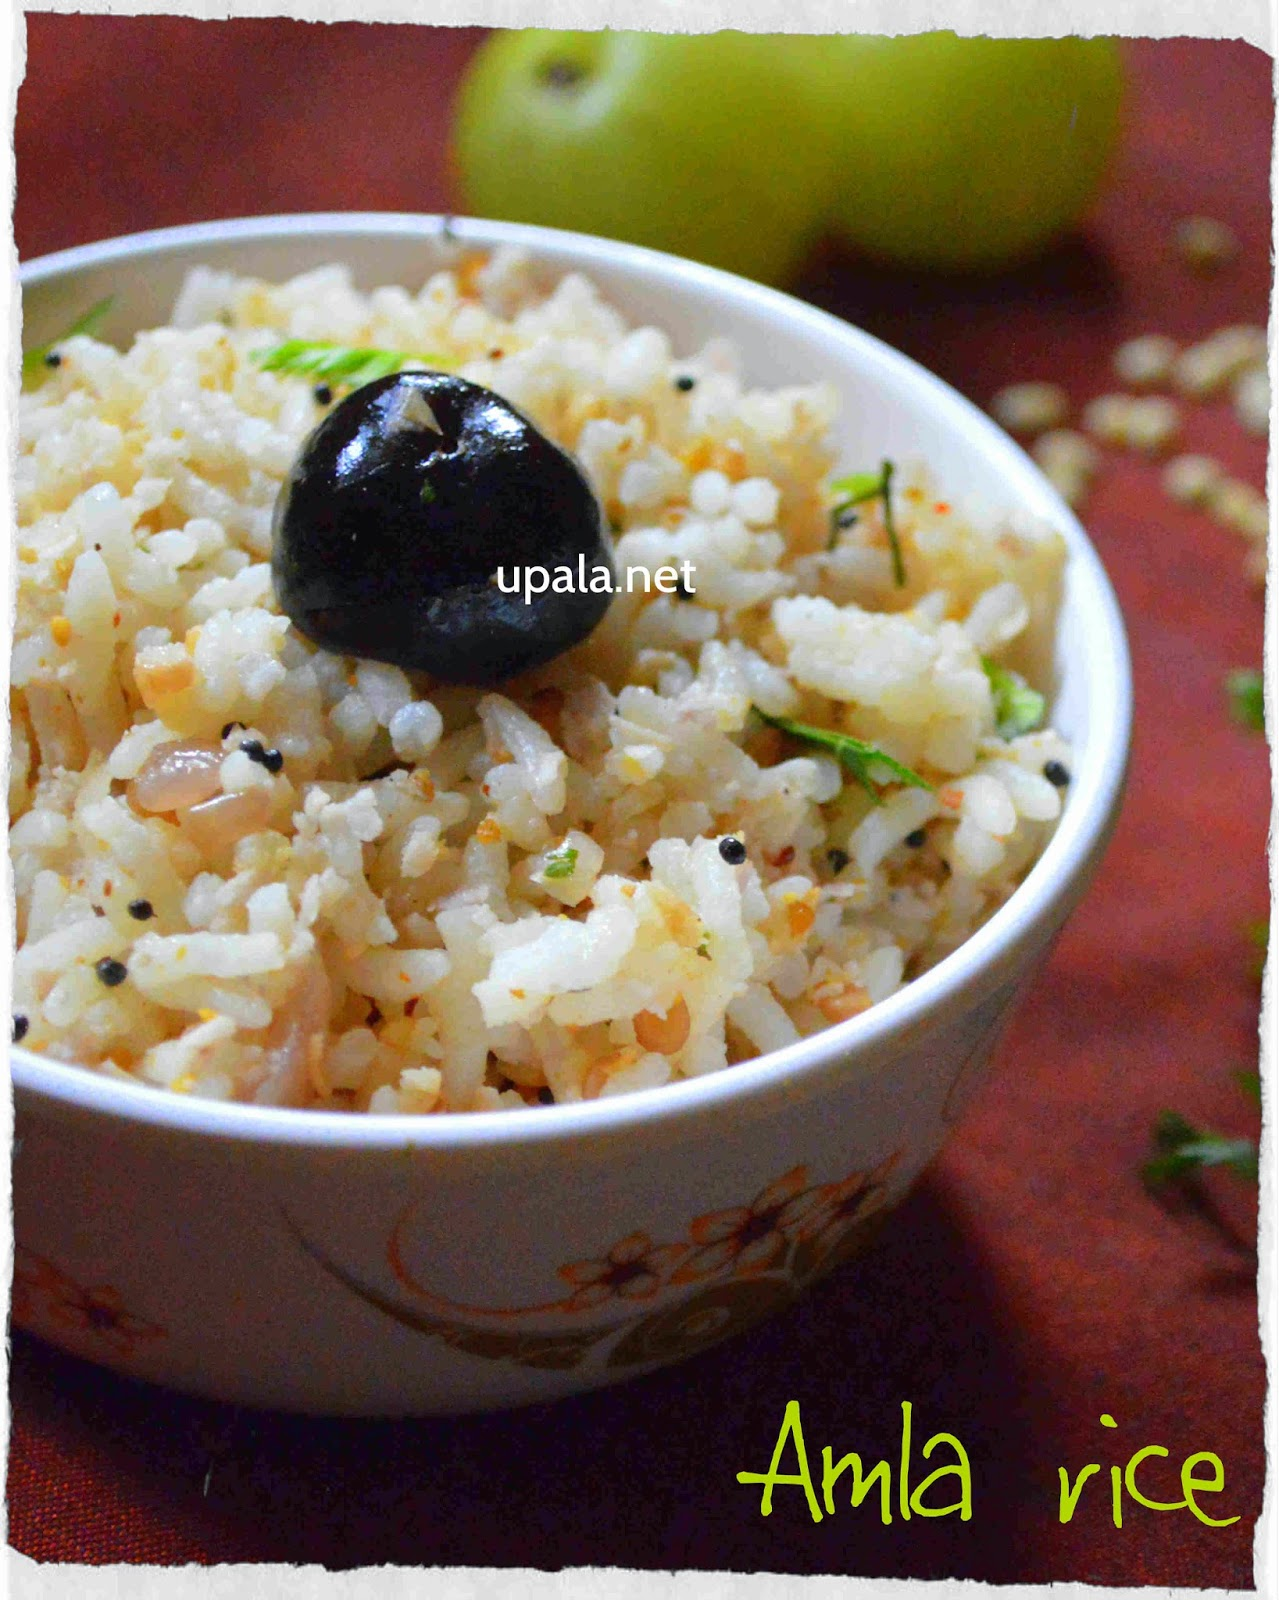 amla rice-nelikai rice